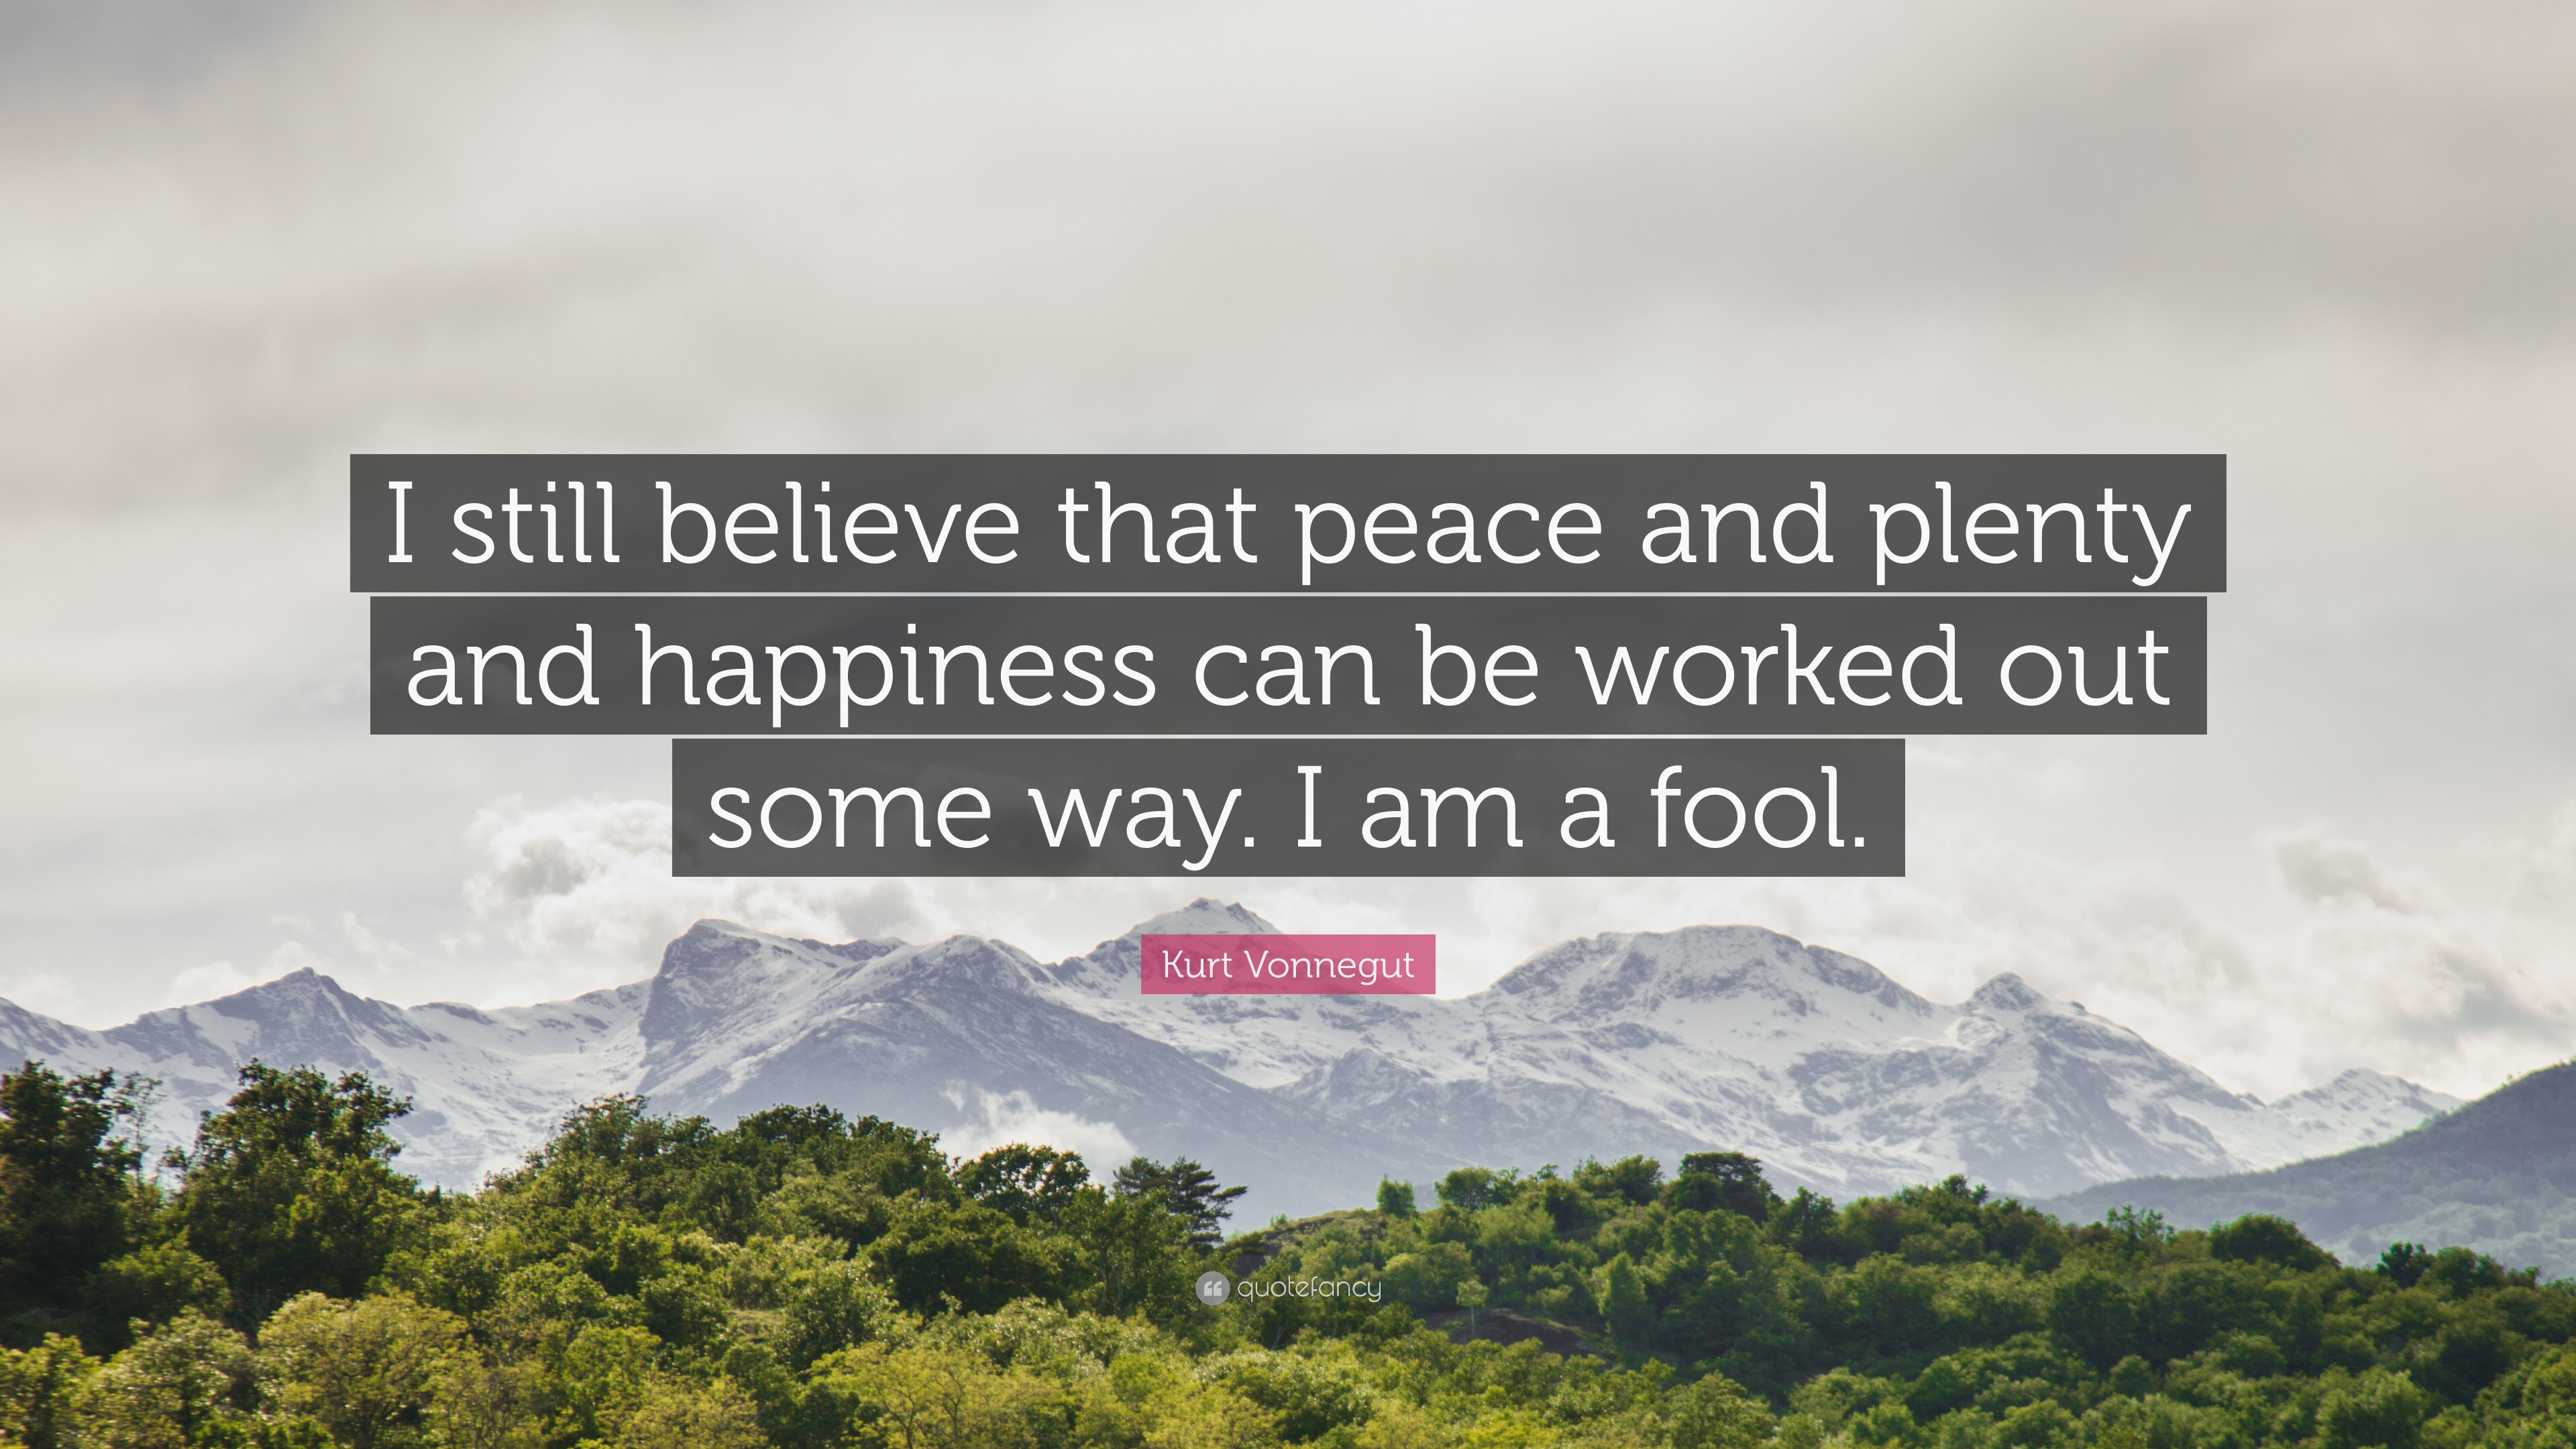 Kurt Vonnegut Quote I Still Believe That Peace And Plenty And